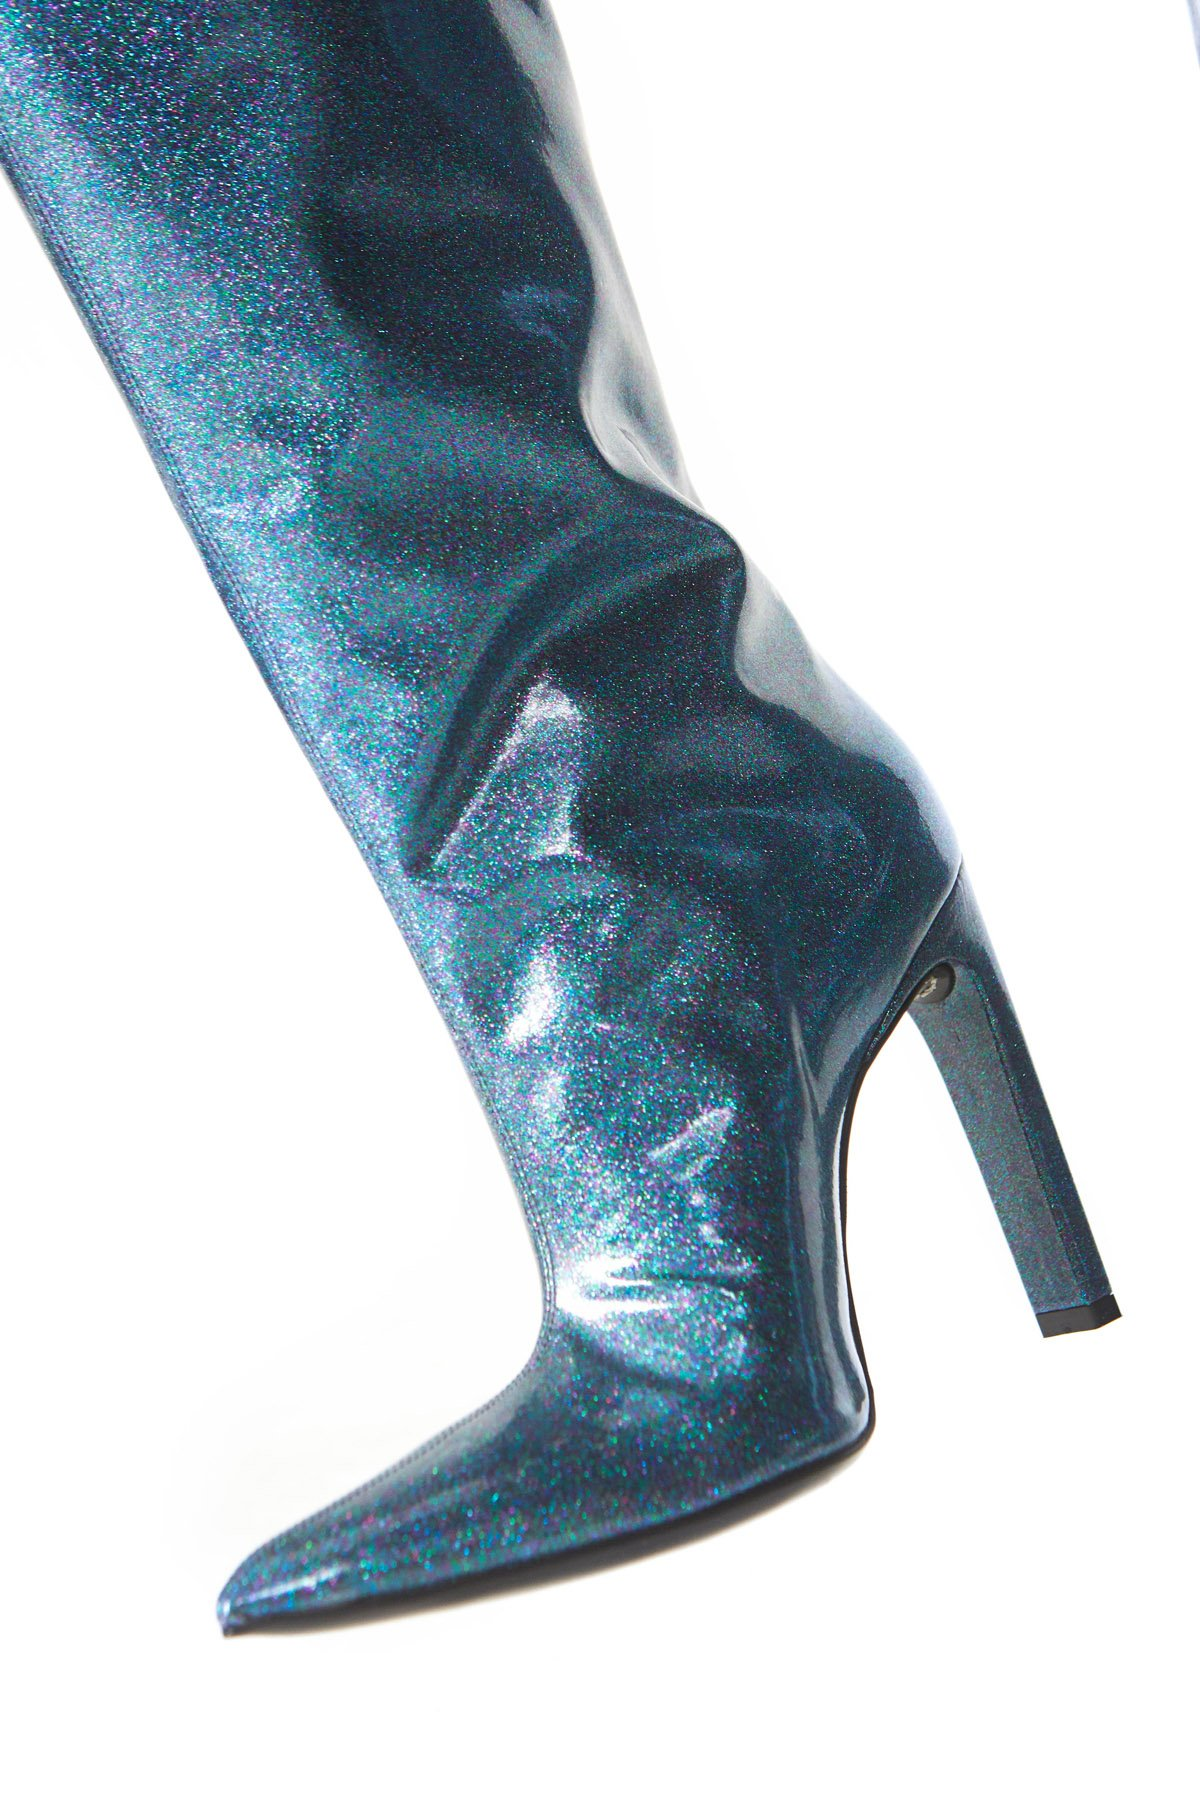 Featuring a stiletto heel and pointed toe, these knee-high boots are crafted with a glossy blue patent leather and finished with a multicolored glitter.